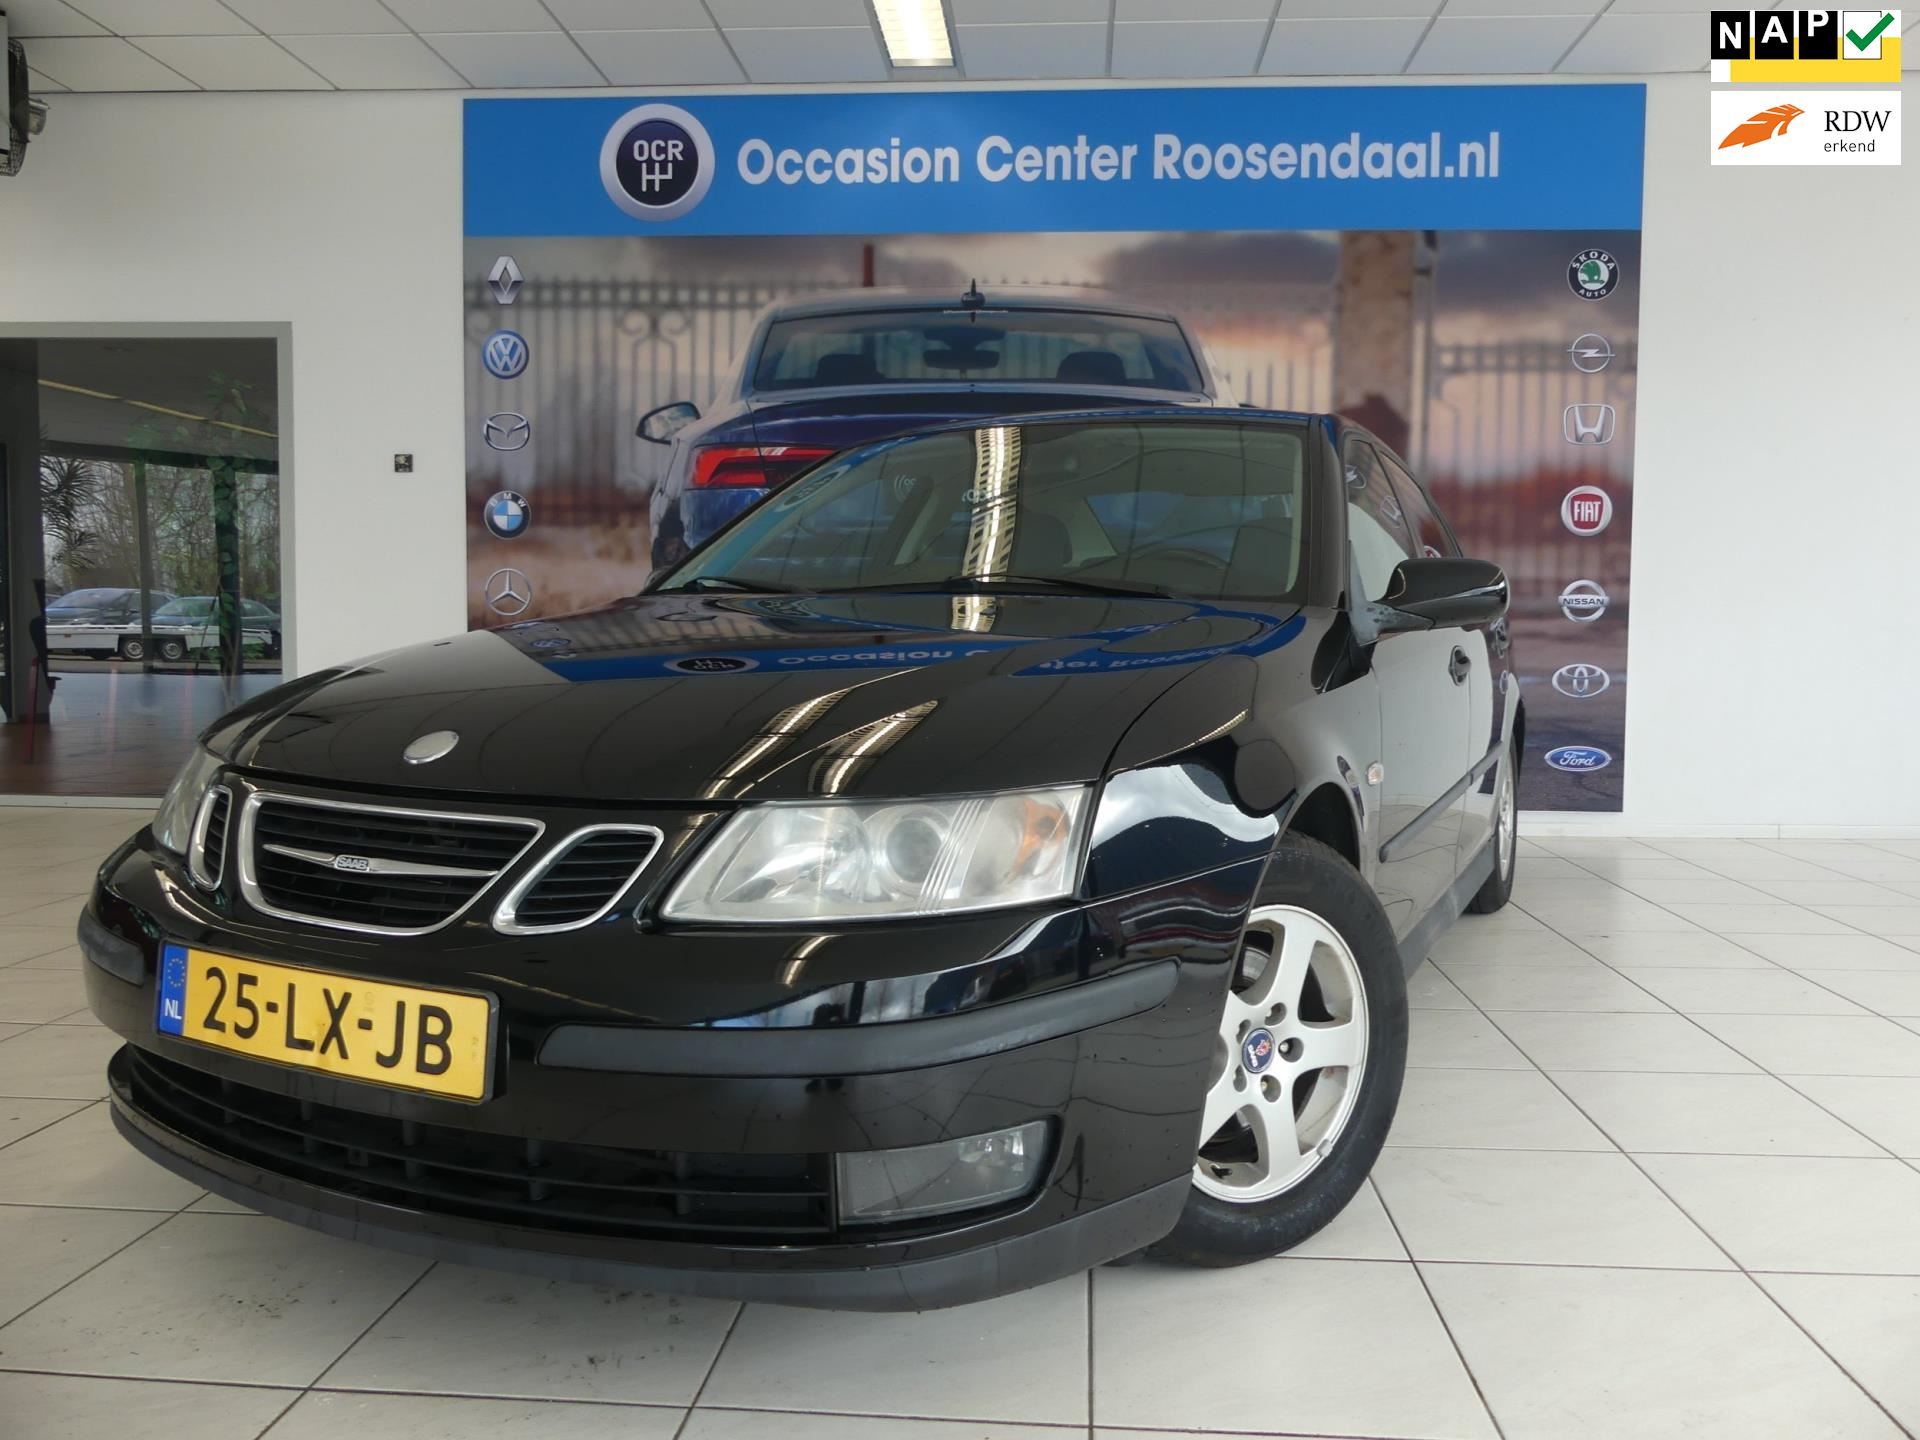 Saab 9-3 Sport Sedan occasion - Occasion Center Roosendaal